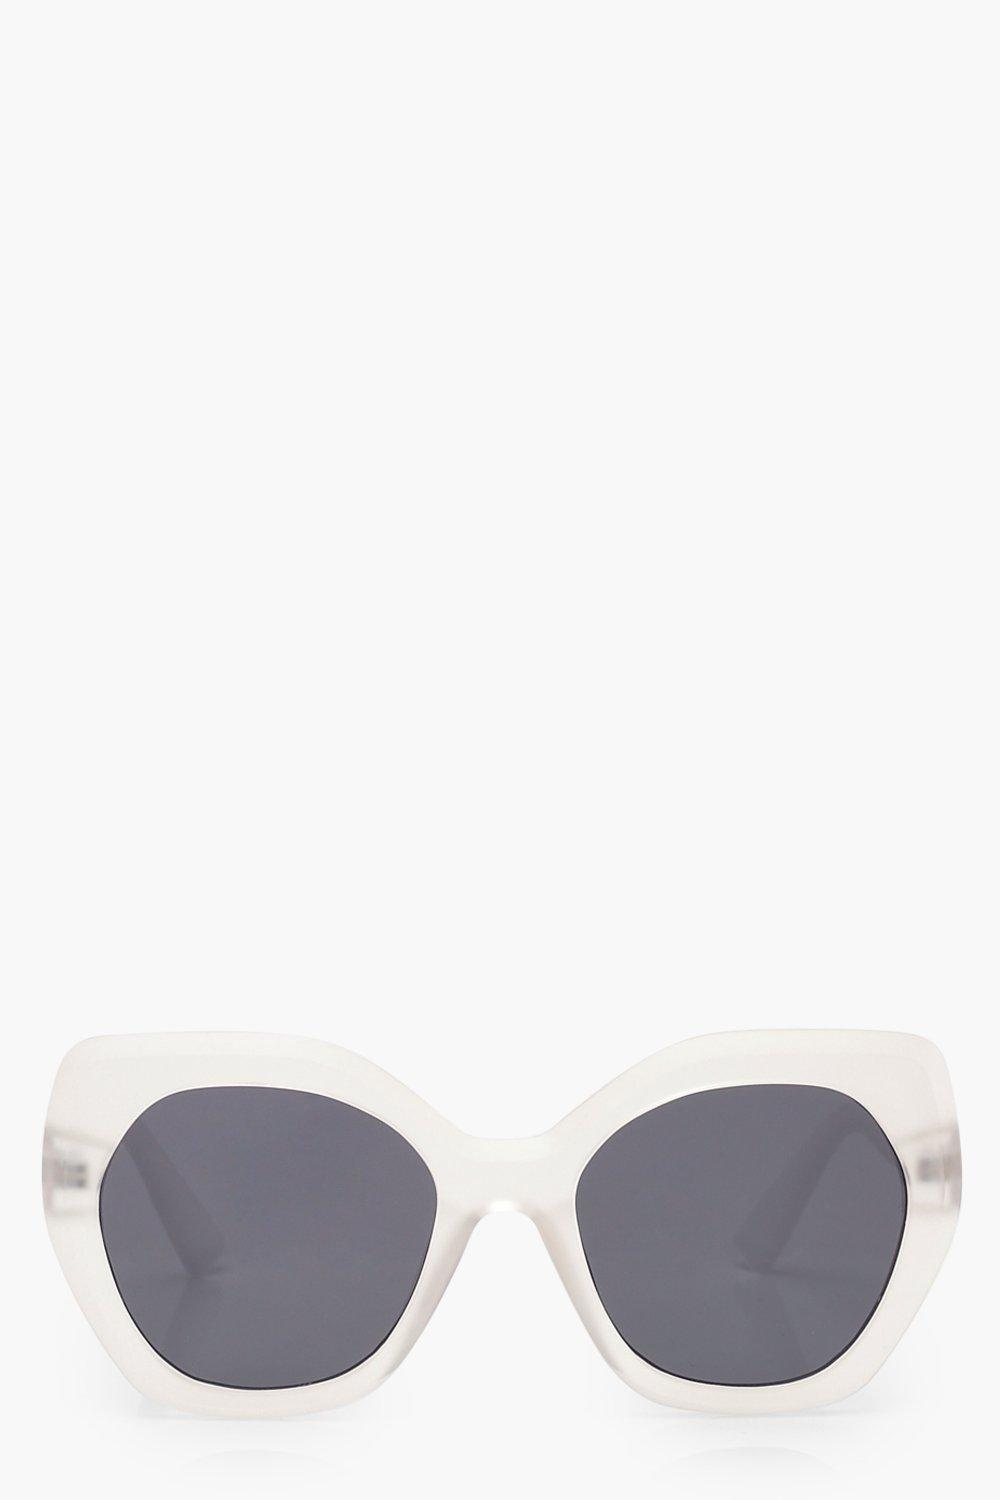 boohoo Womens Frosted Oversized Sunglasses - White - One Size, White